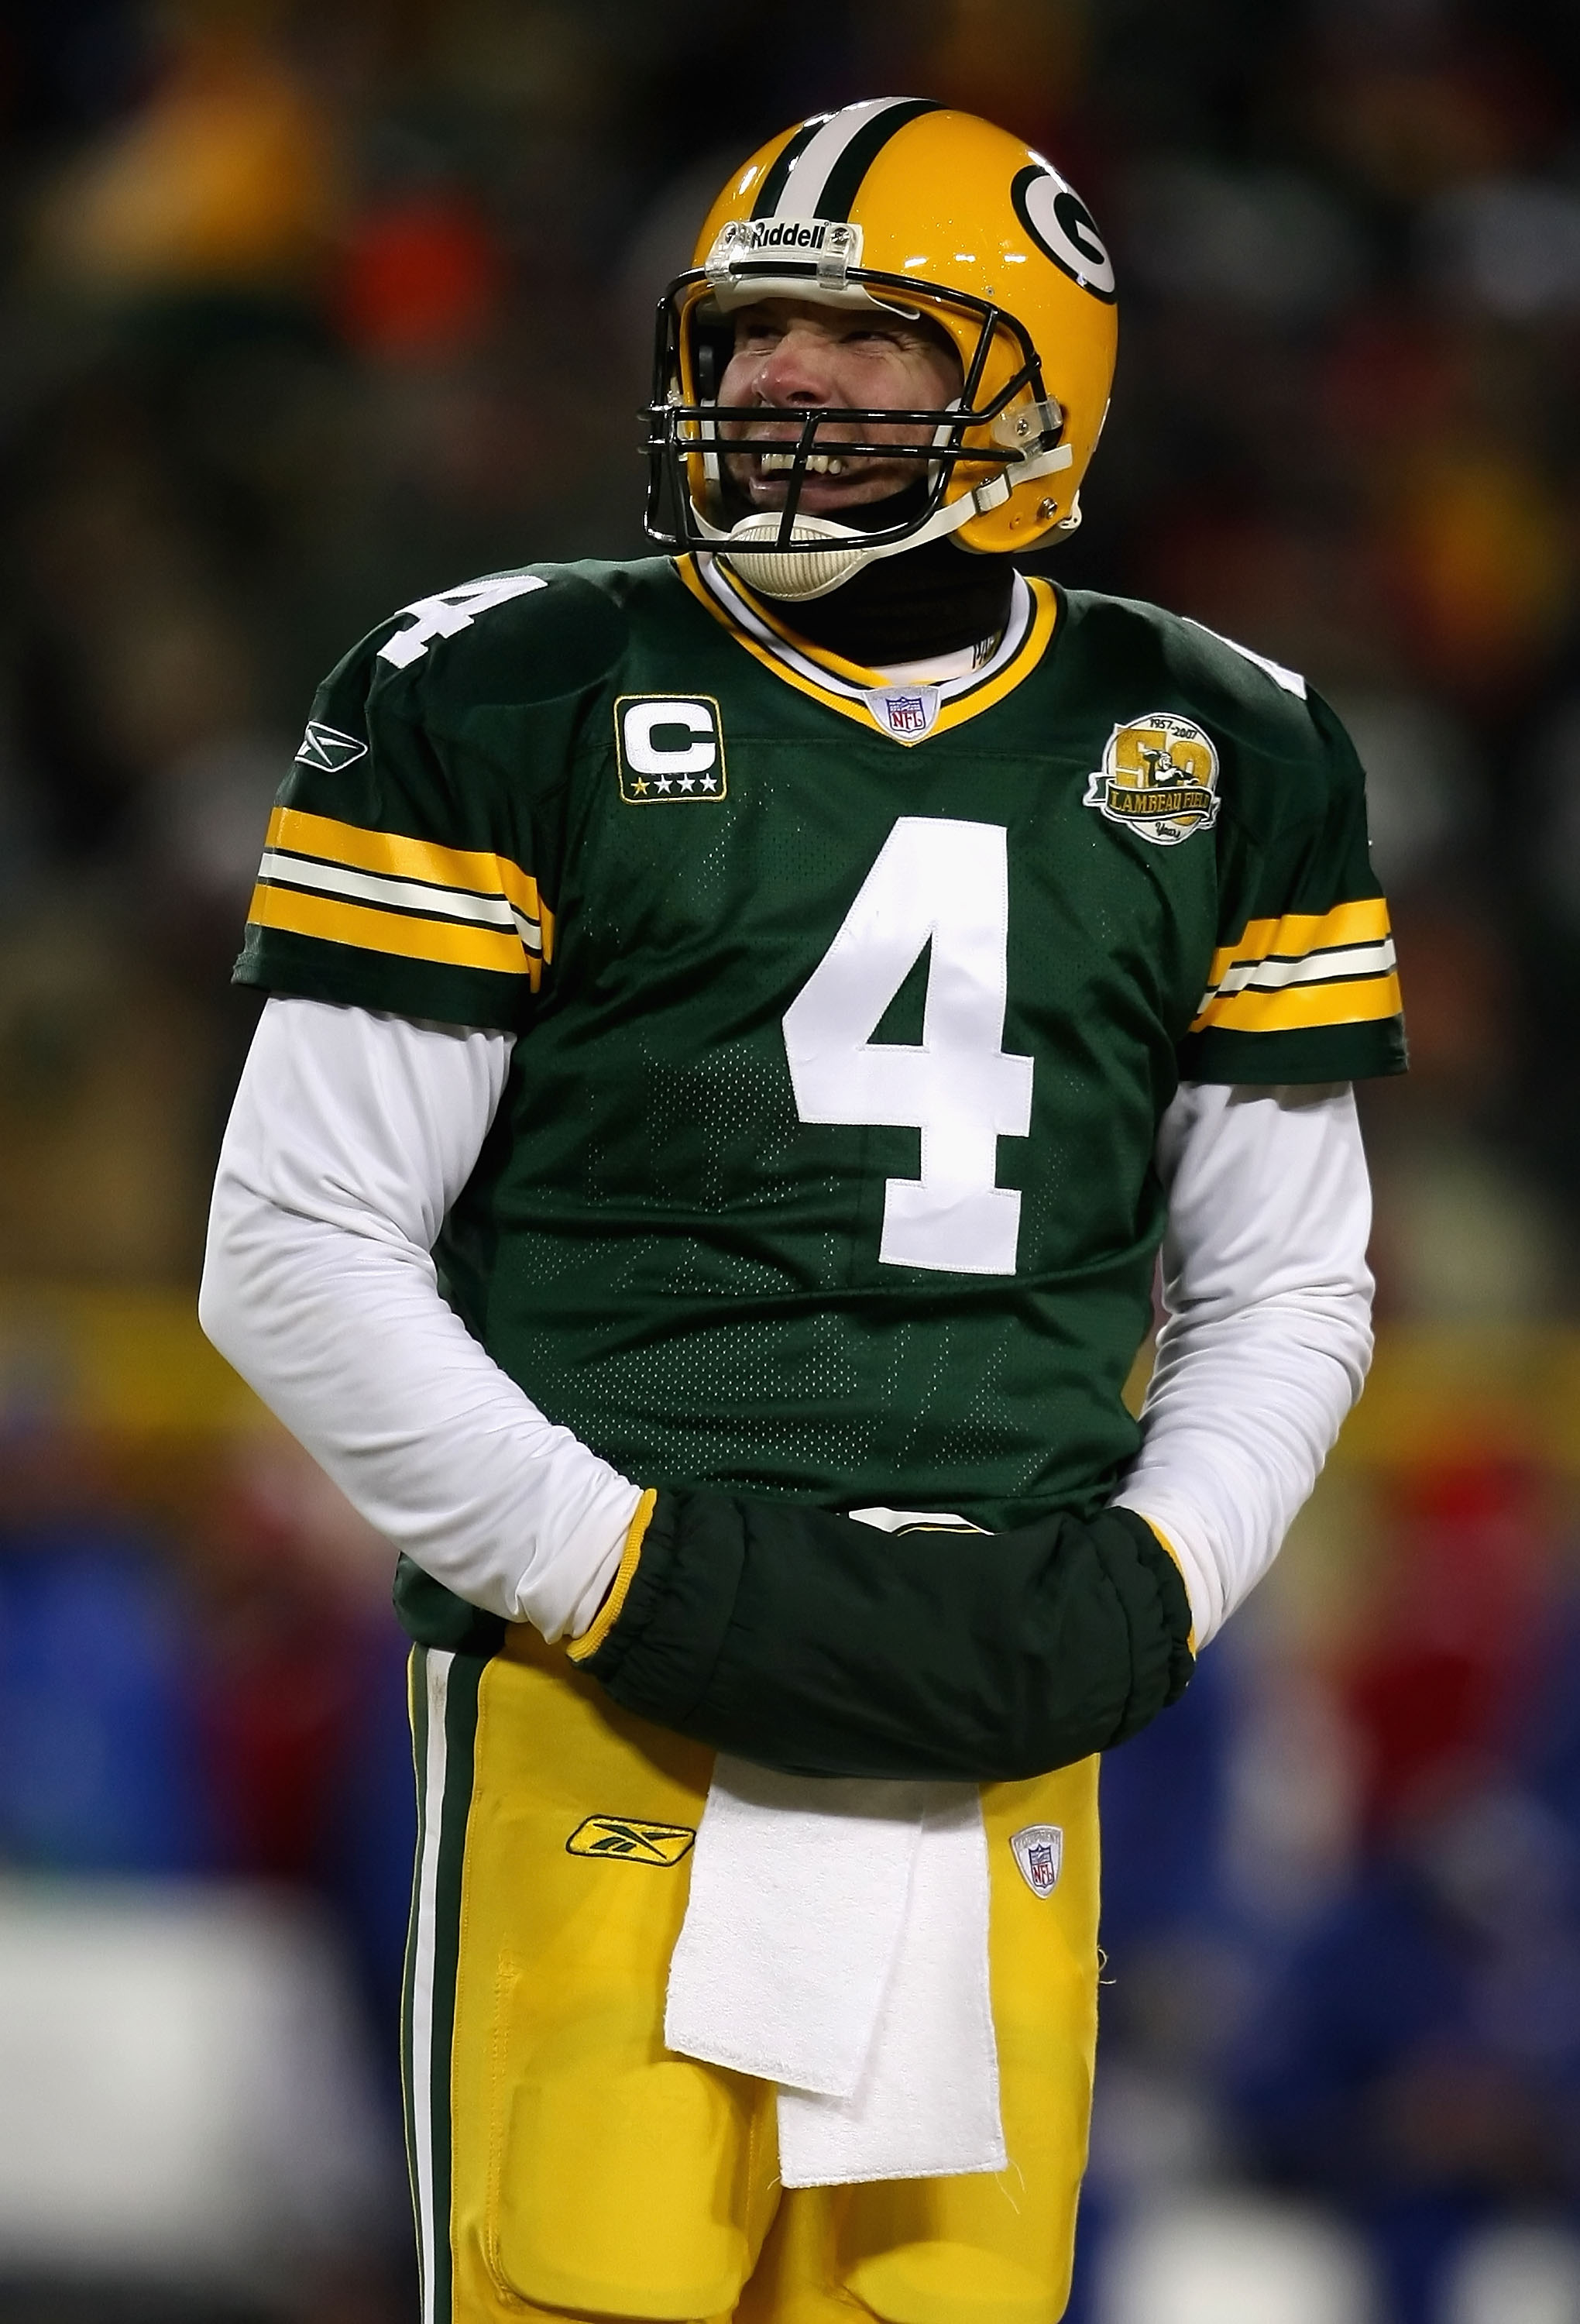 GREEN BAY, WI - JANUARY 20:  Quarterback Brett Favre #4 of the Green Bay Packers looks up to the scoreboard during the NFC championship game against the New York Giants on January 20, 2008 at Lambeau Field in Green Bay, Wisconsin.  (Photo by Jonathan Dani